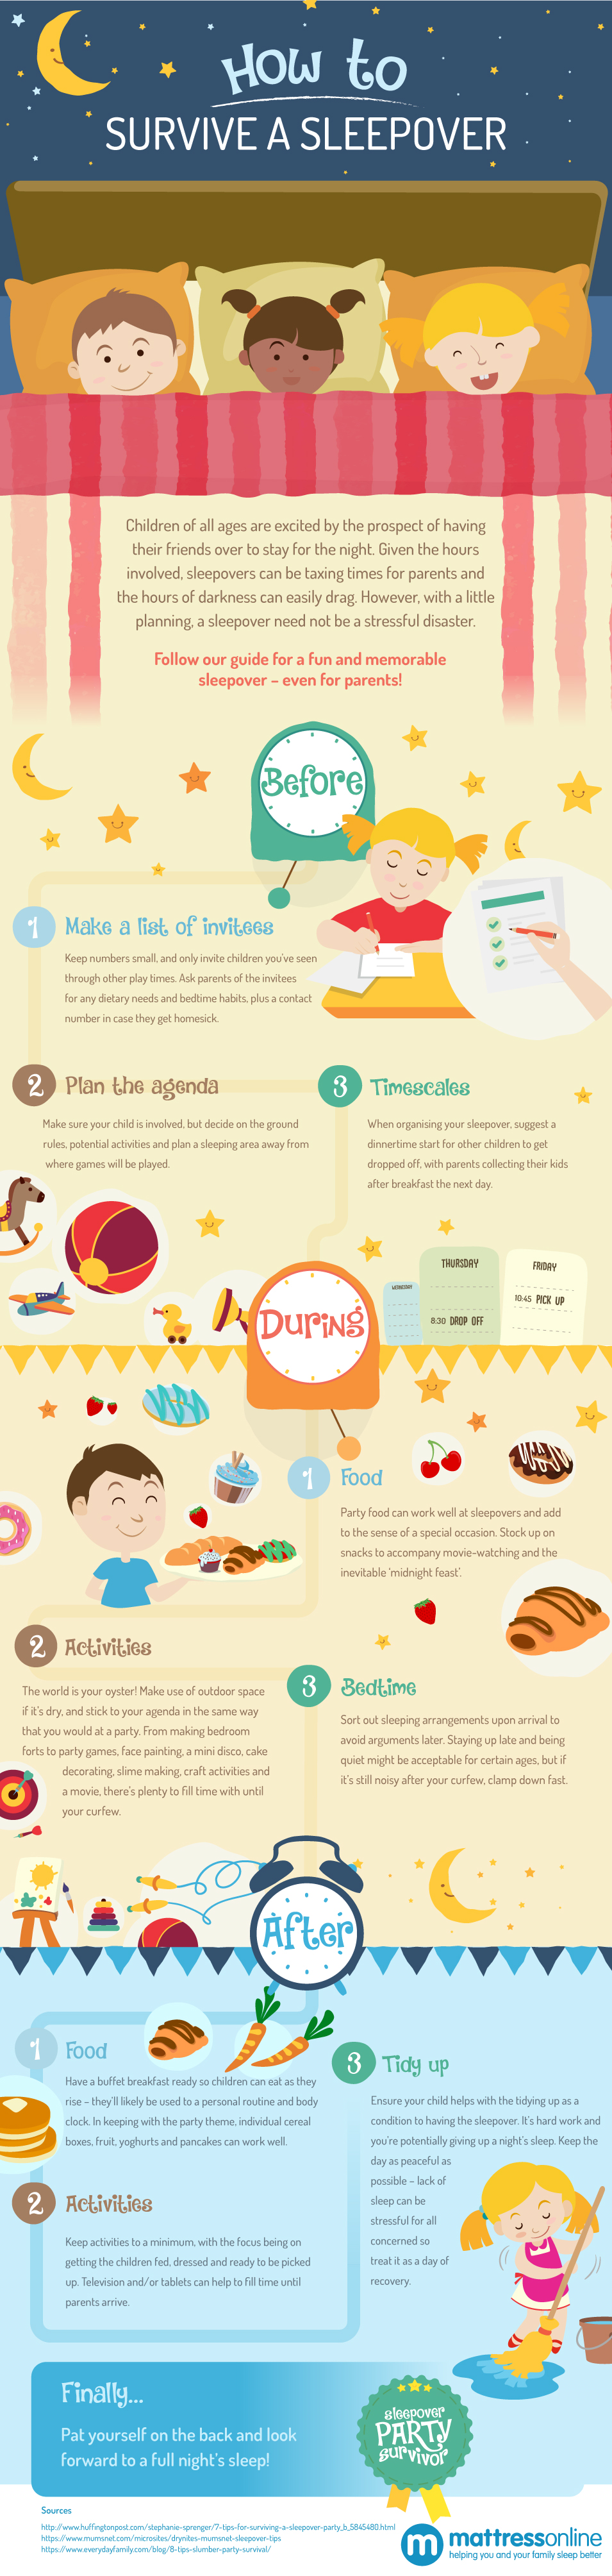 Infographic showing parents how to survive a sleepover for children.